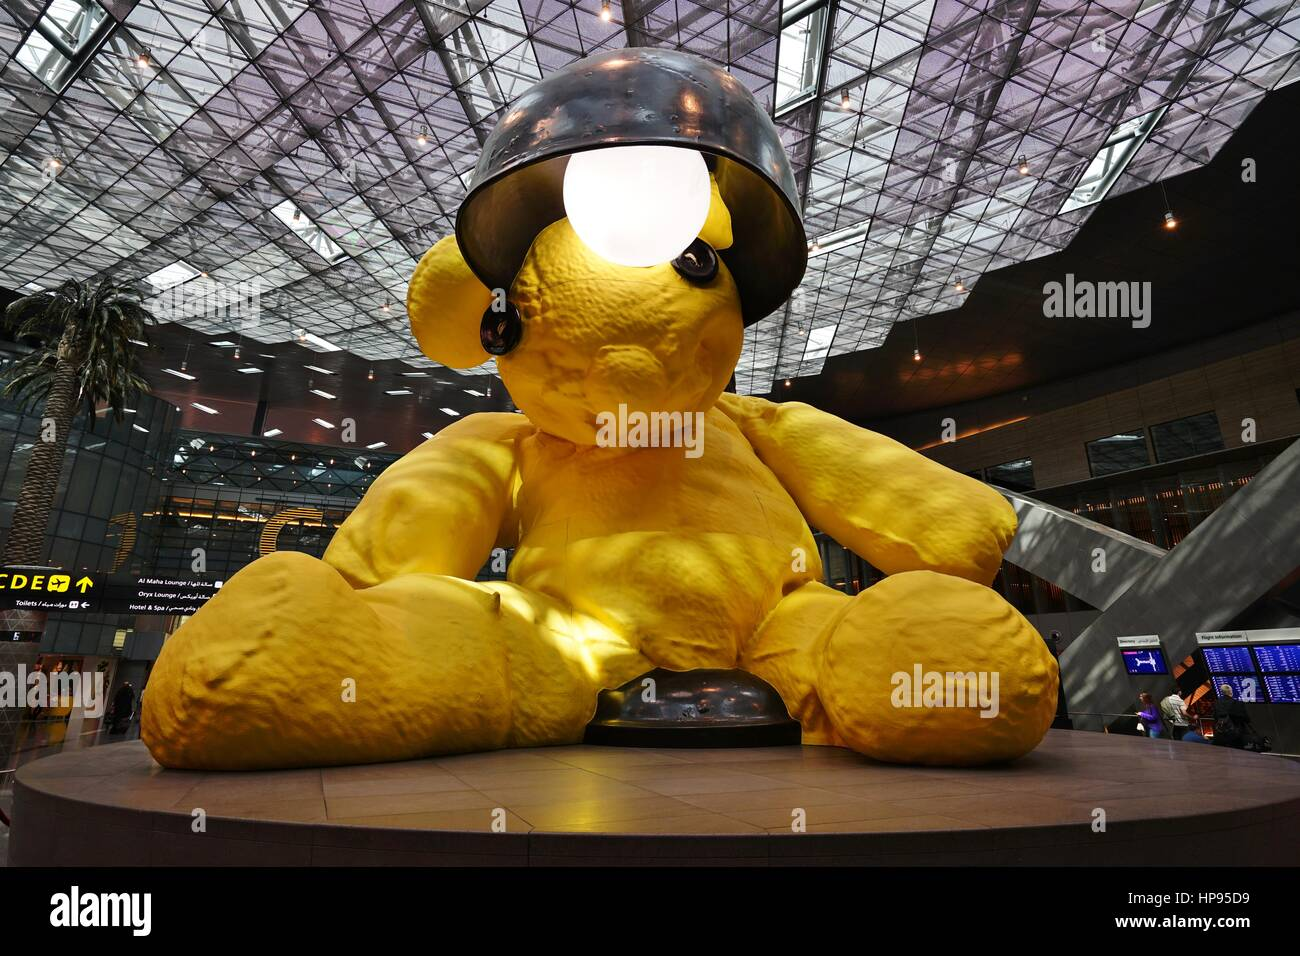 A Canary Yellow Lamp Teddy Bear Sculpture In The Middle Of The Terminal At  The Hamad International Airport (DOH) In Doha, Qatar